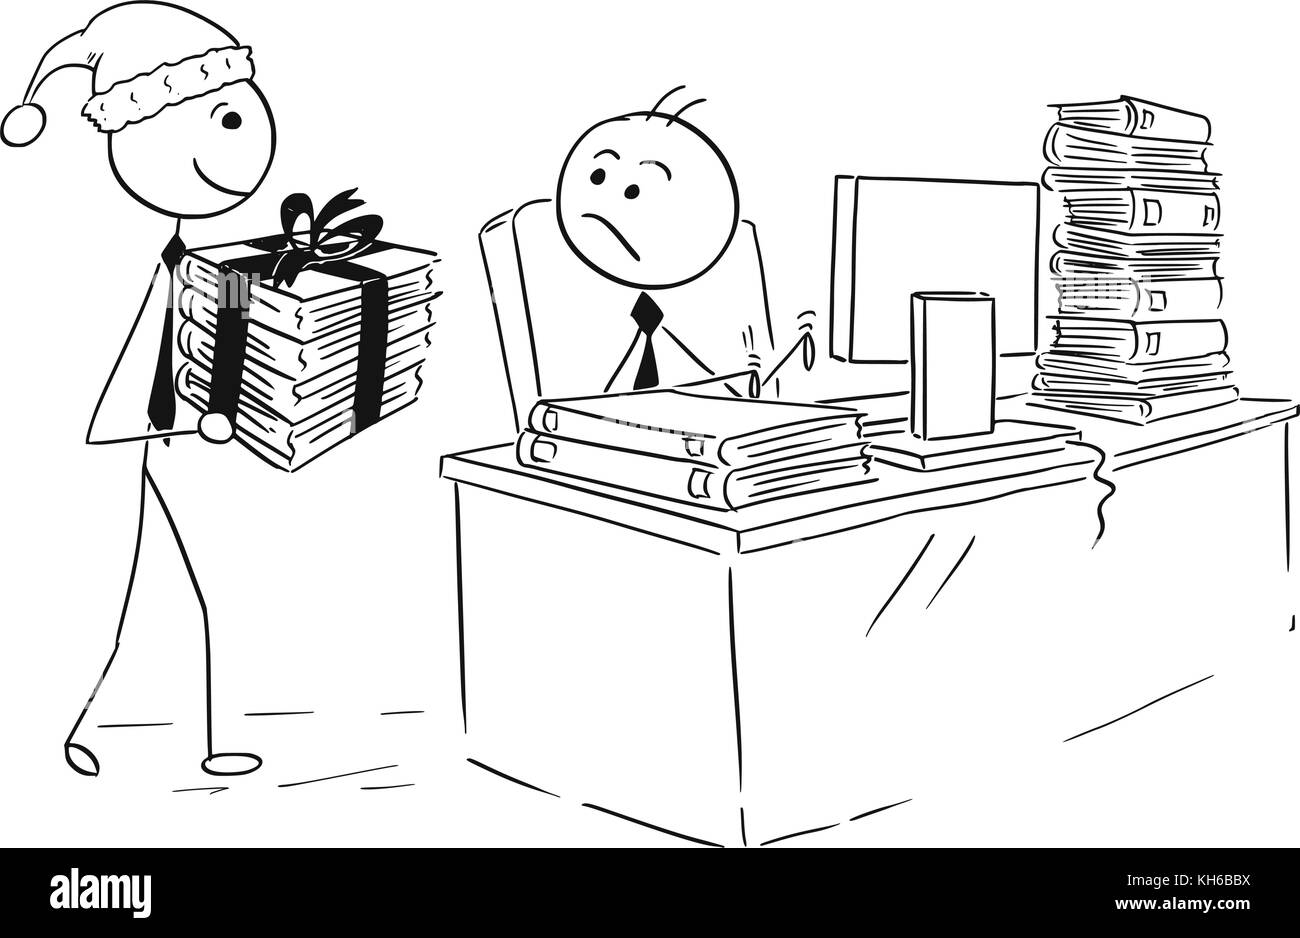 Cartoon stick man drawing illustration of man working on computer in office during Christmas, boss giving him more - Stock Image